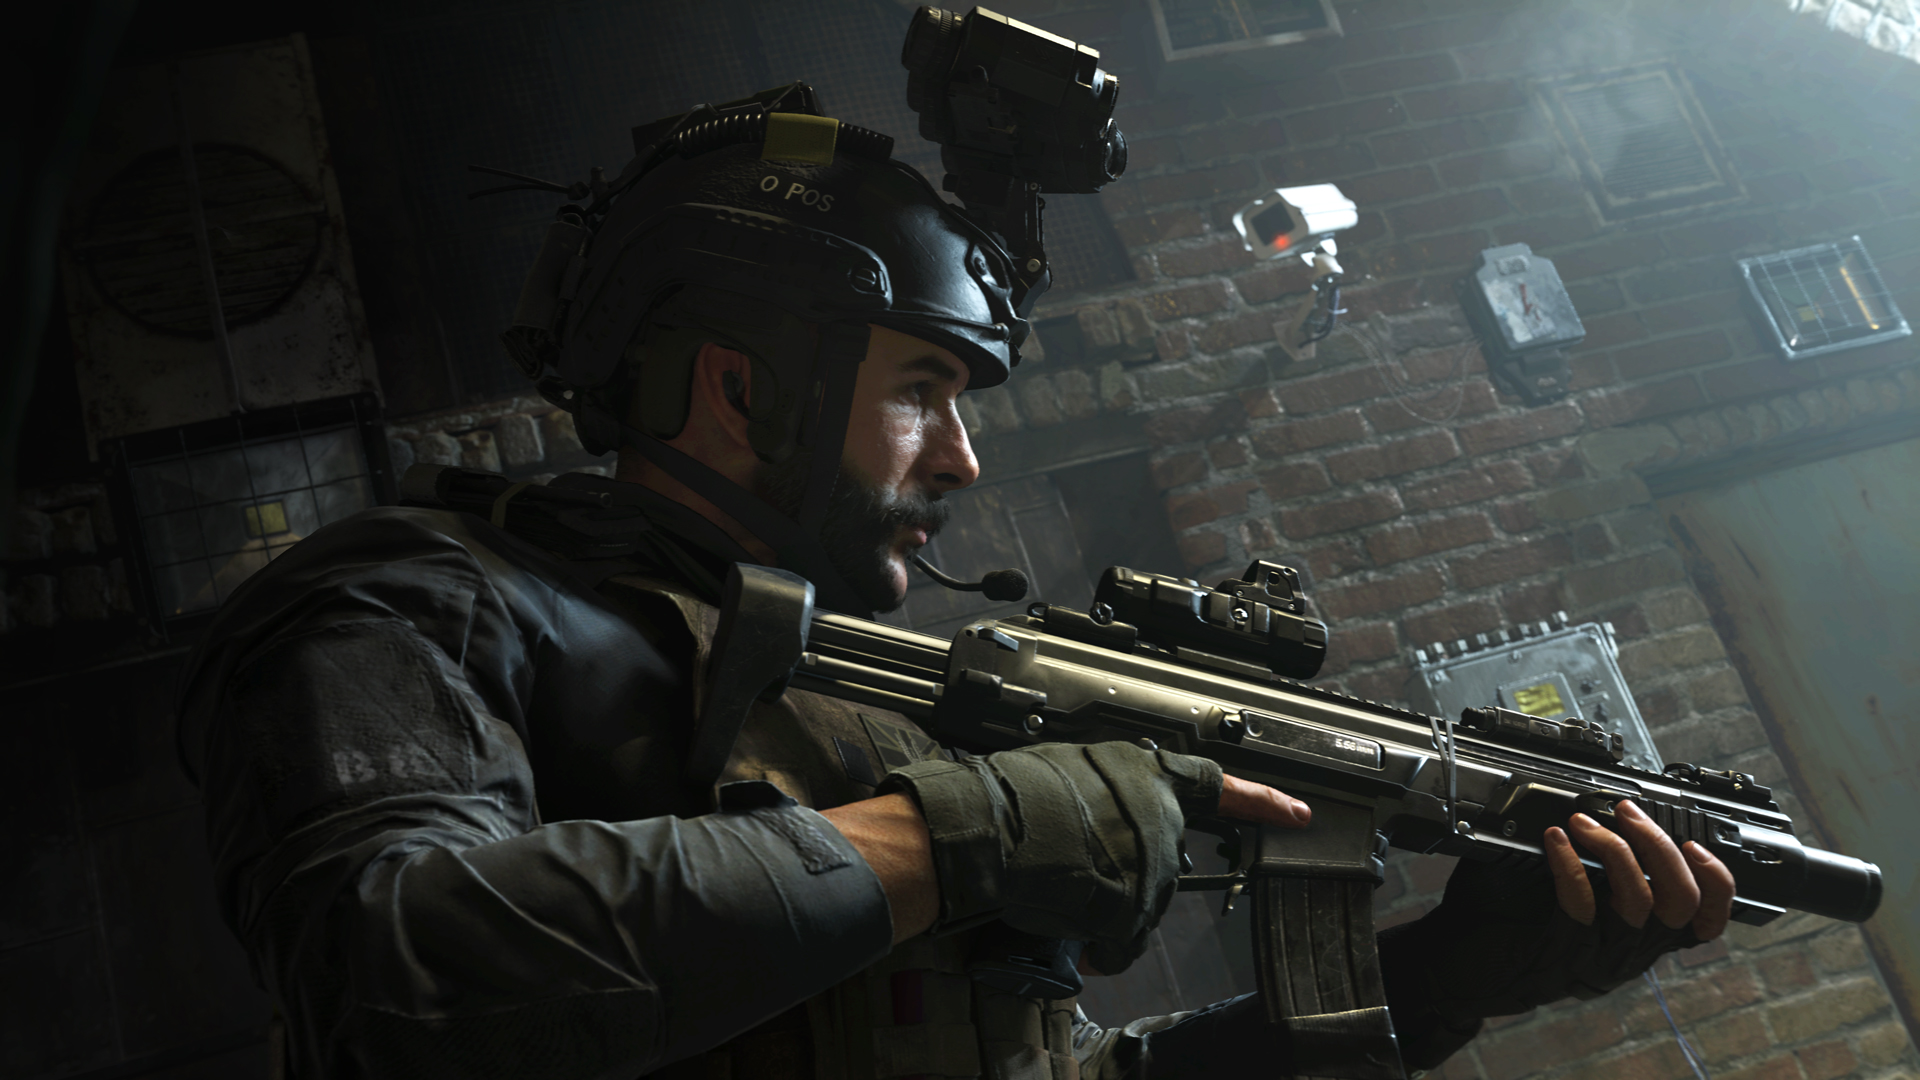 YouTube is changing how it moderates violent video game content